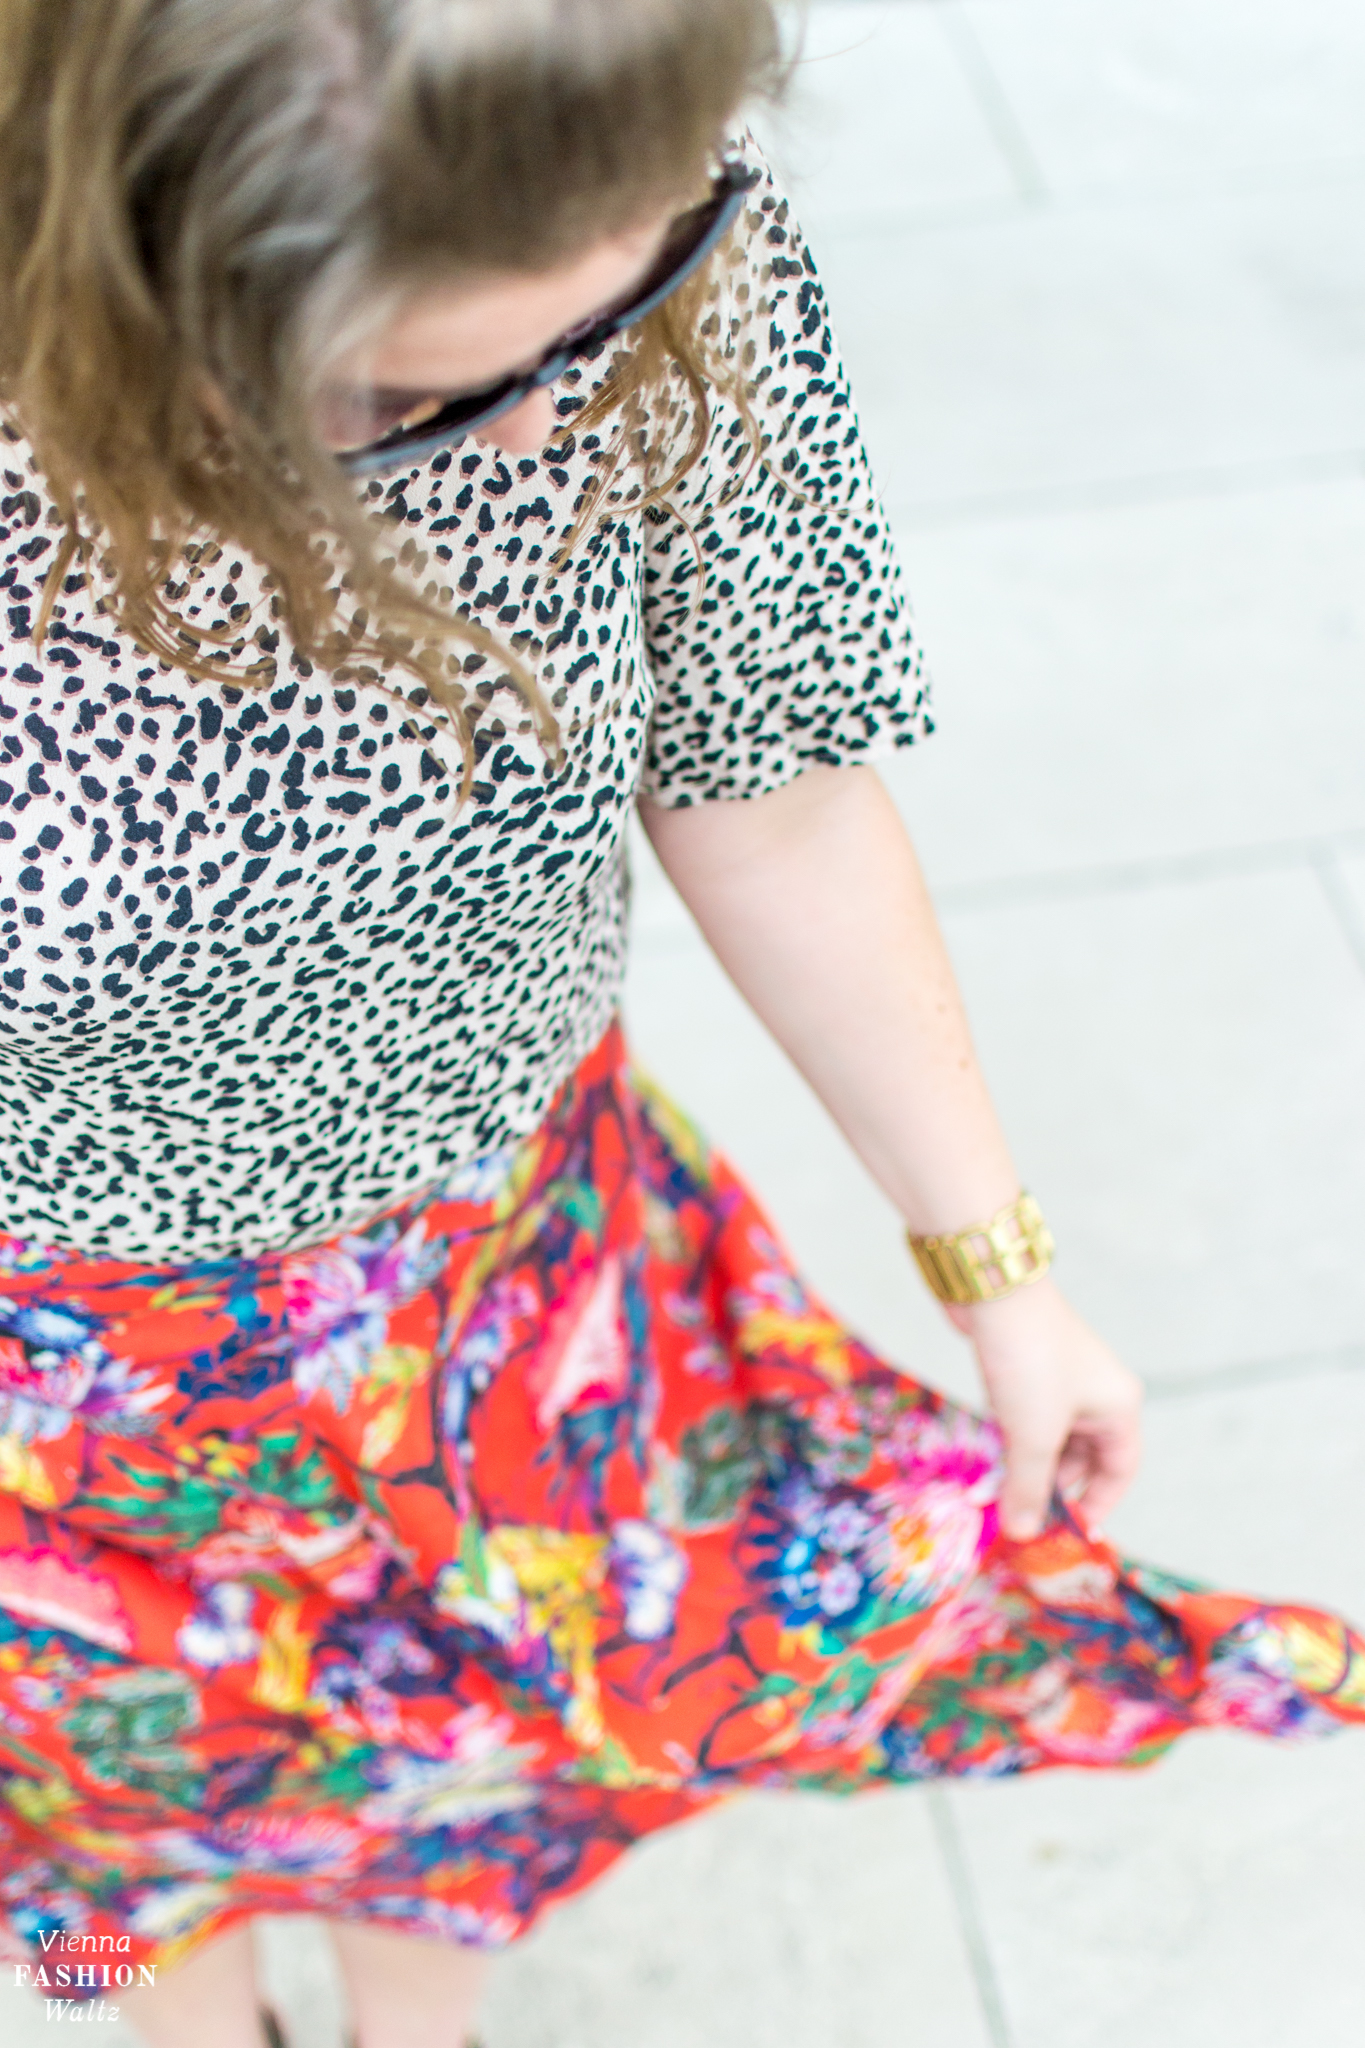 Blumenprints im Trend & Styling Tipps | Print Mix Outfit | Blogger Style, Fashion Streetstyle, Wien Belvedere